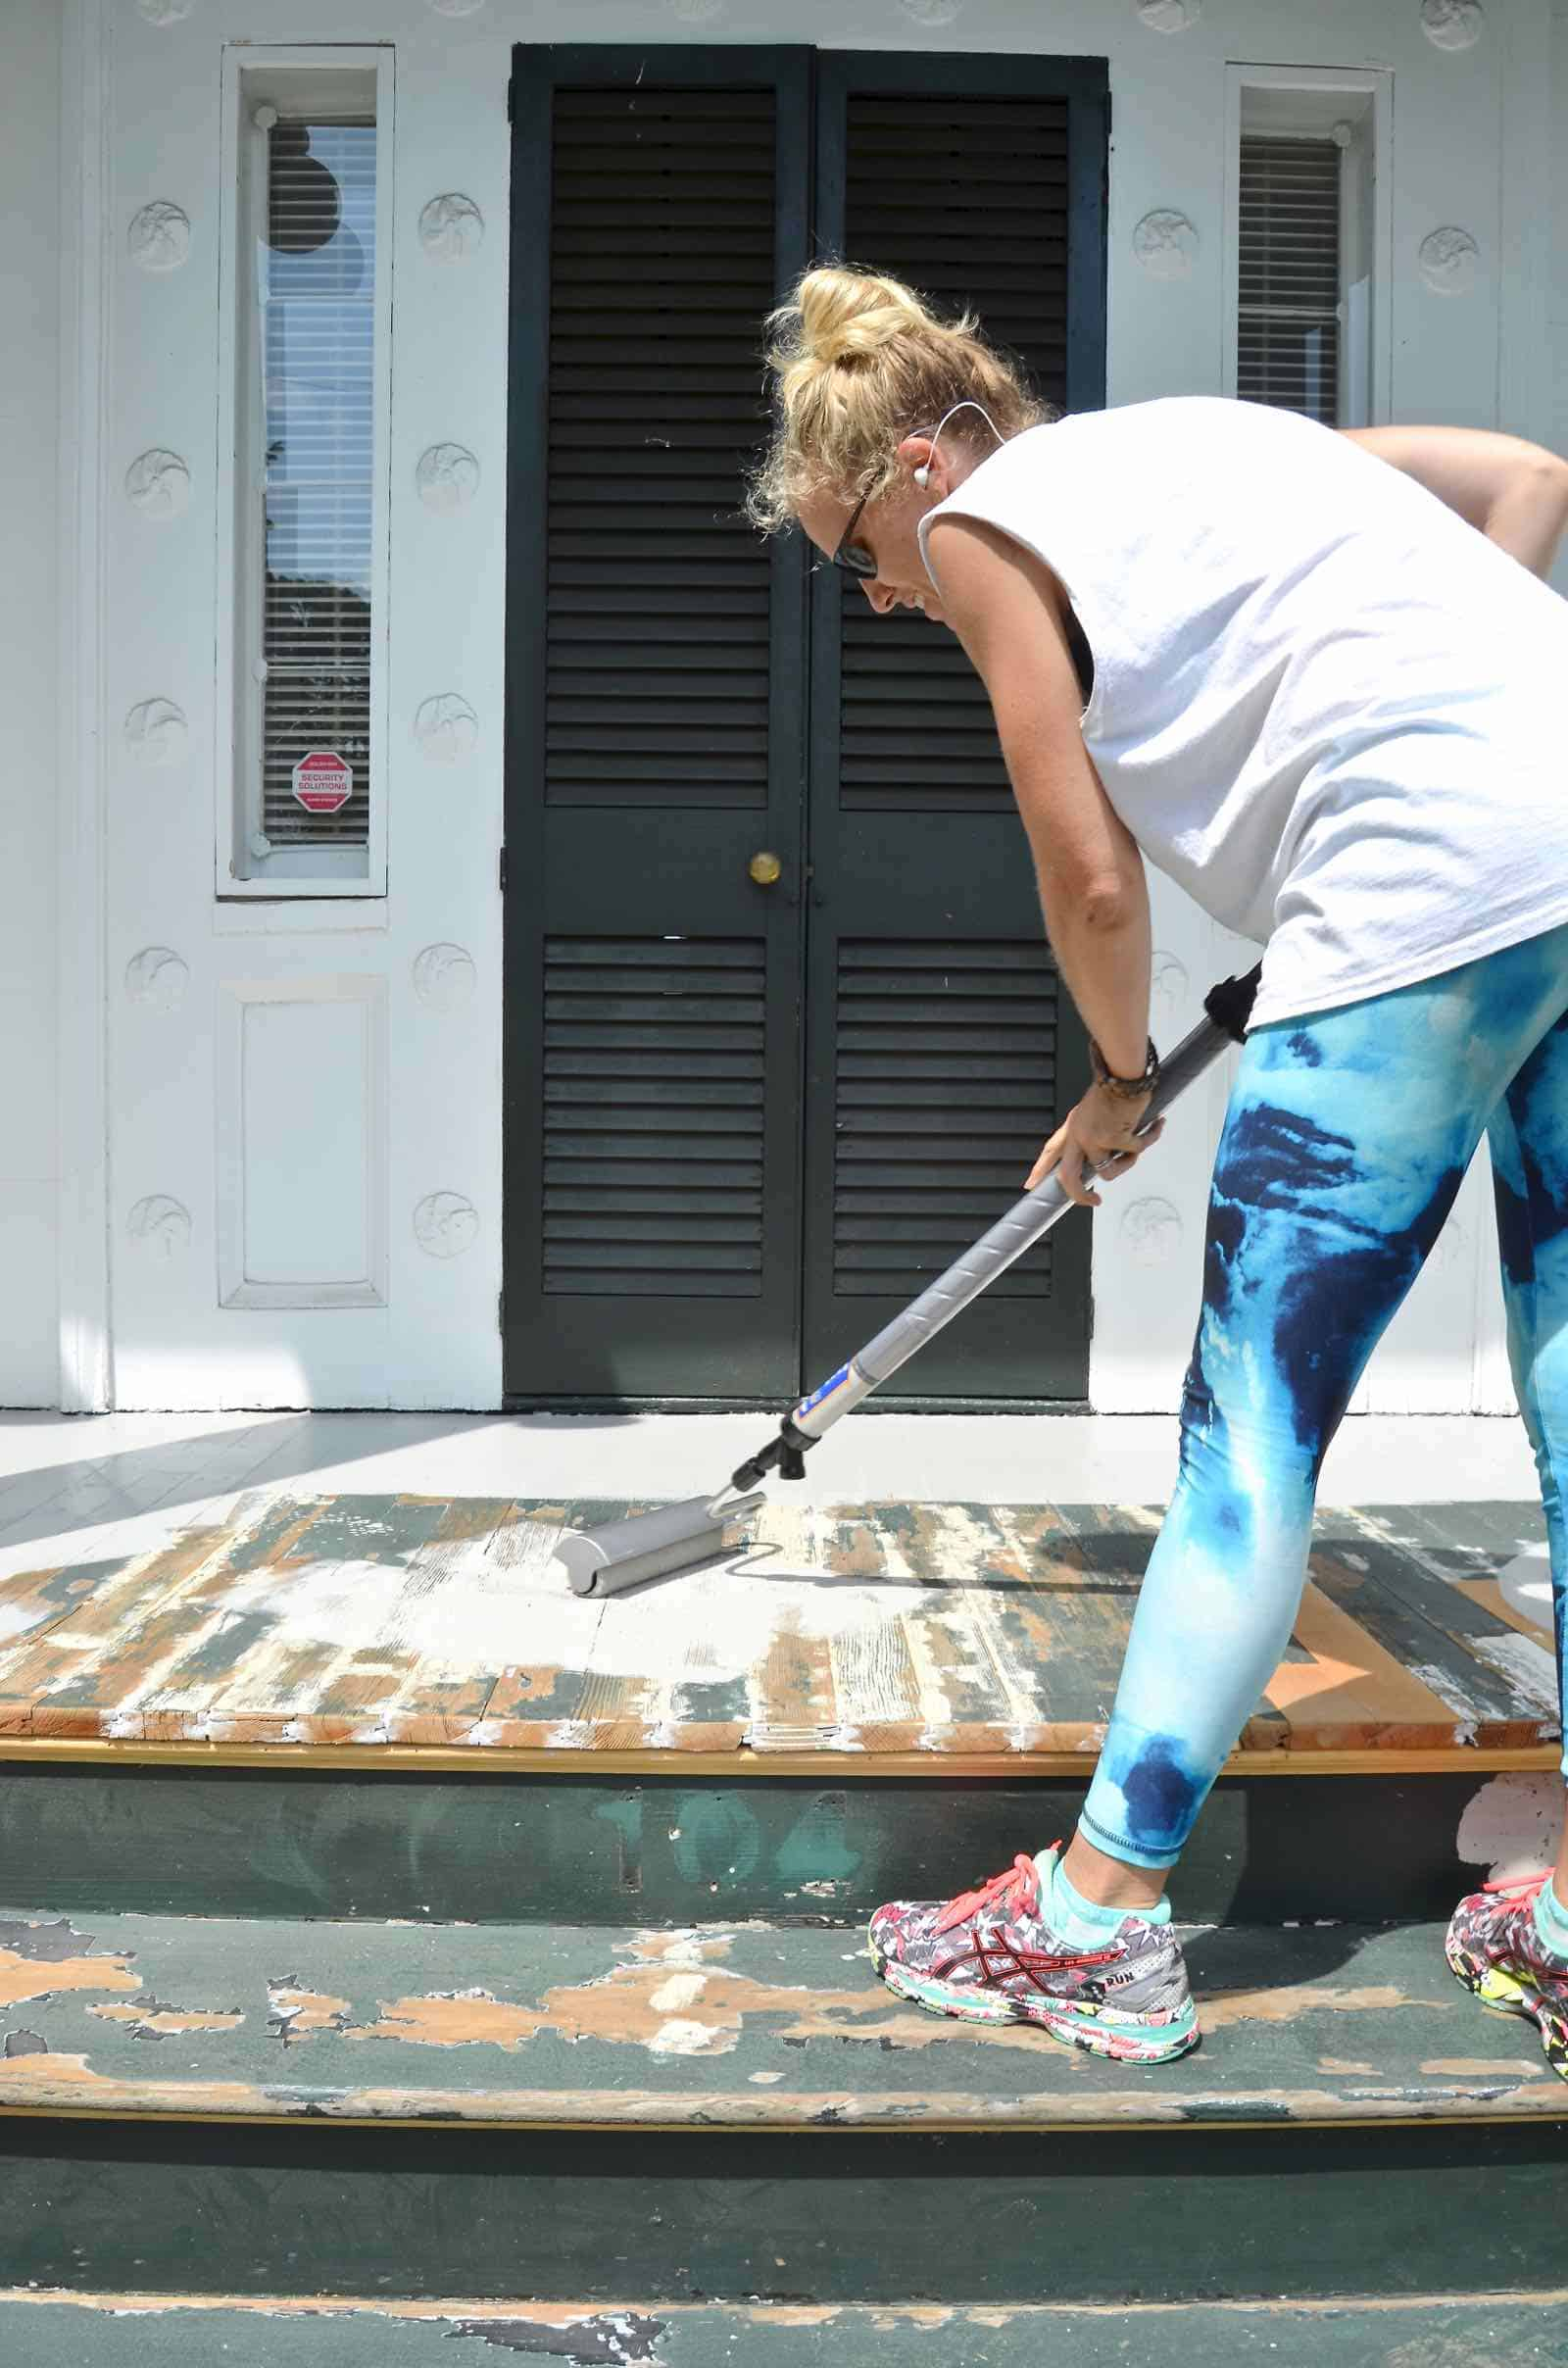 painting the porches with homeright paint stick